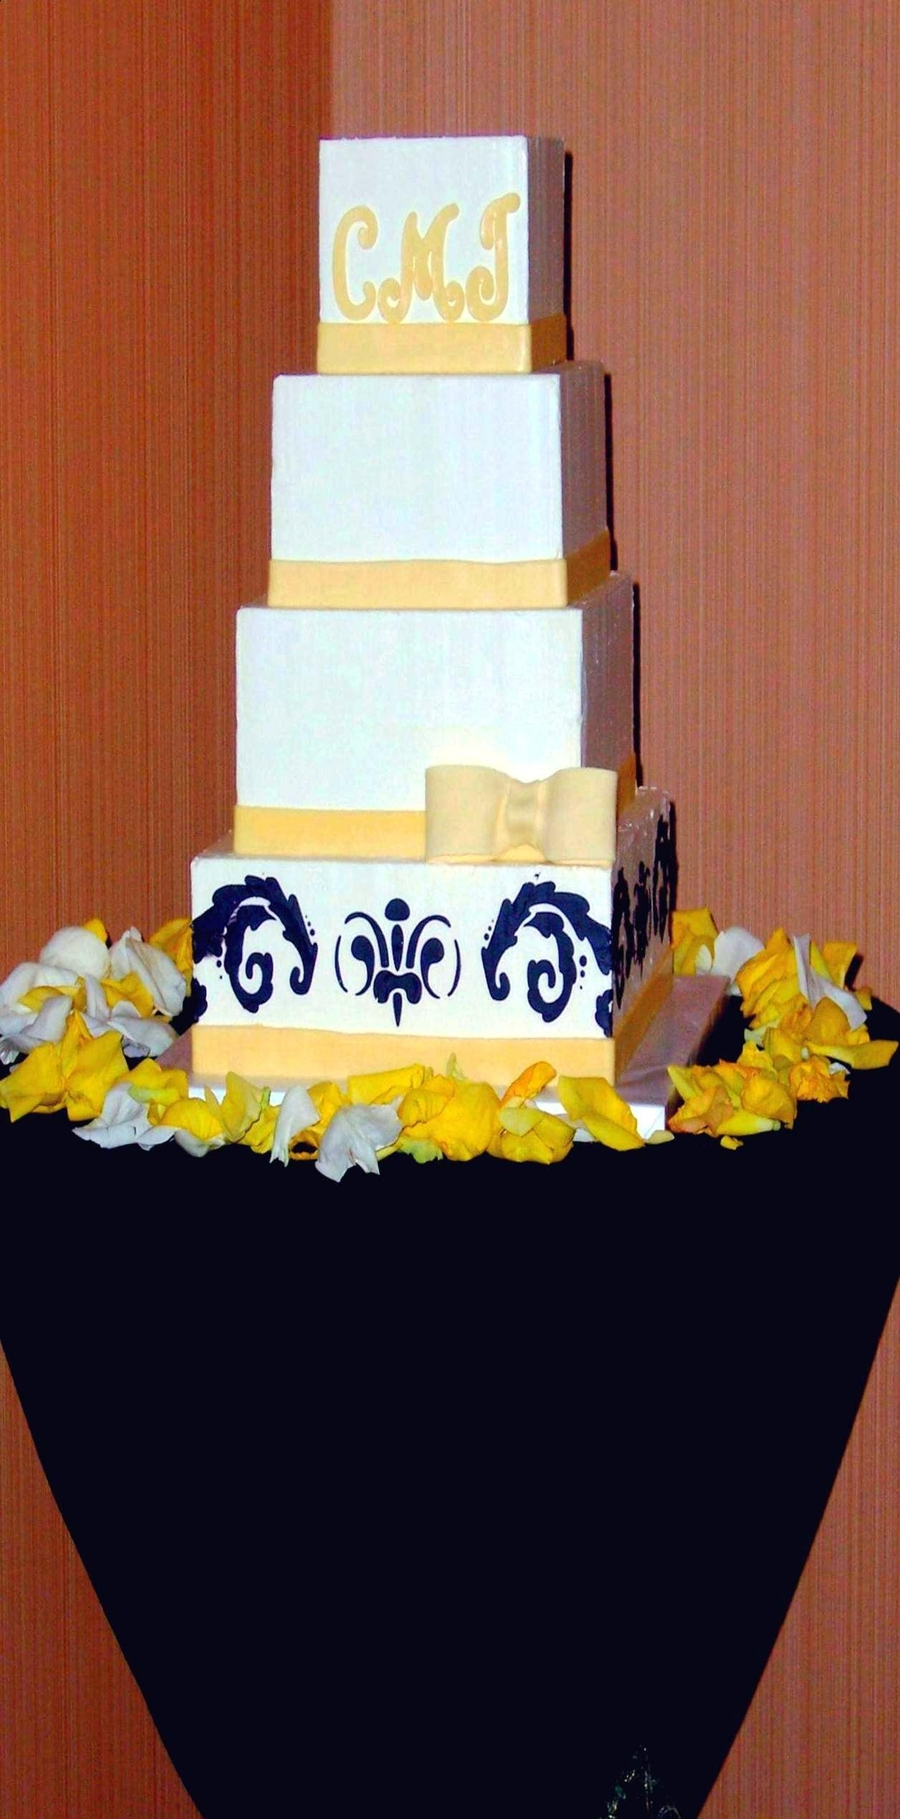 Tall Narrow Wedding Cake. on Cake Central